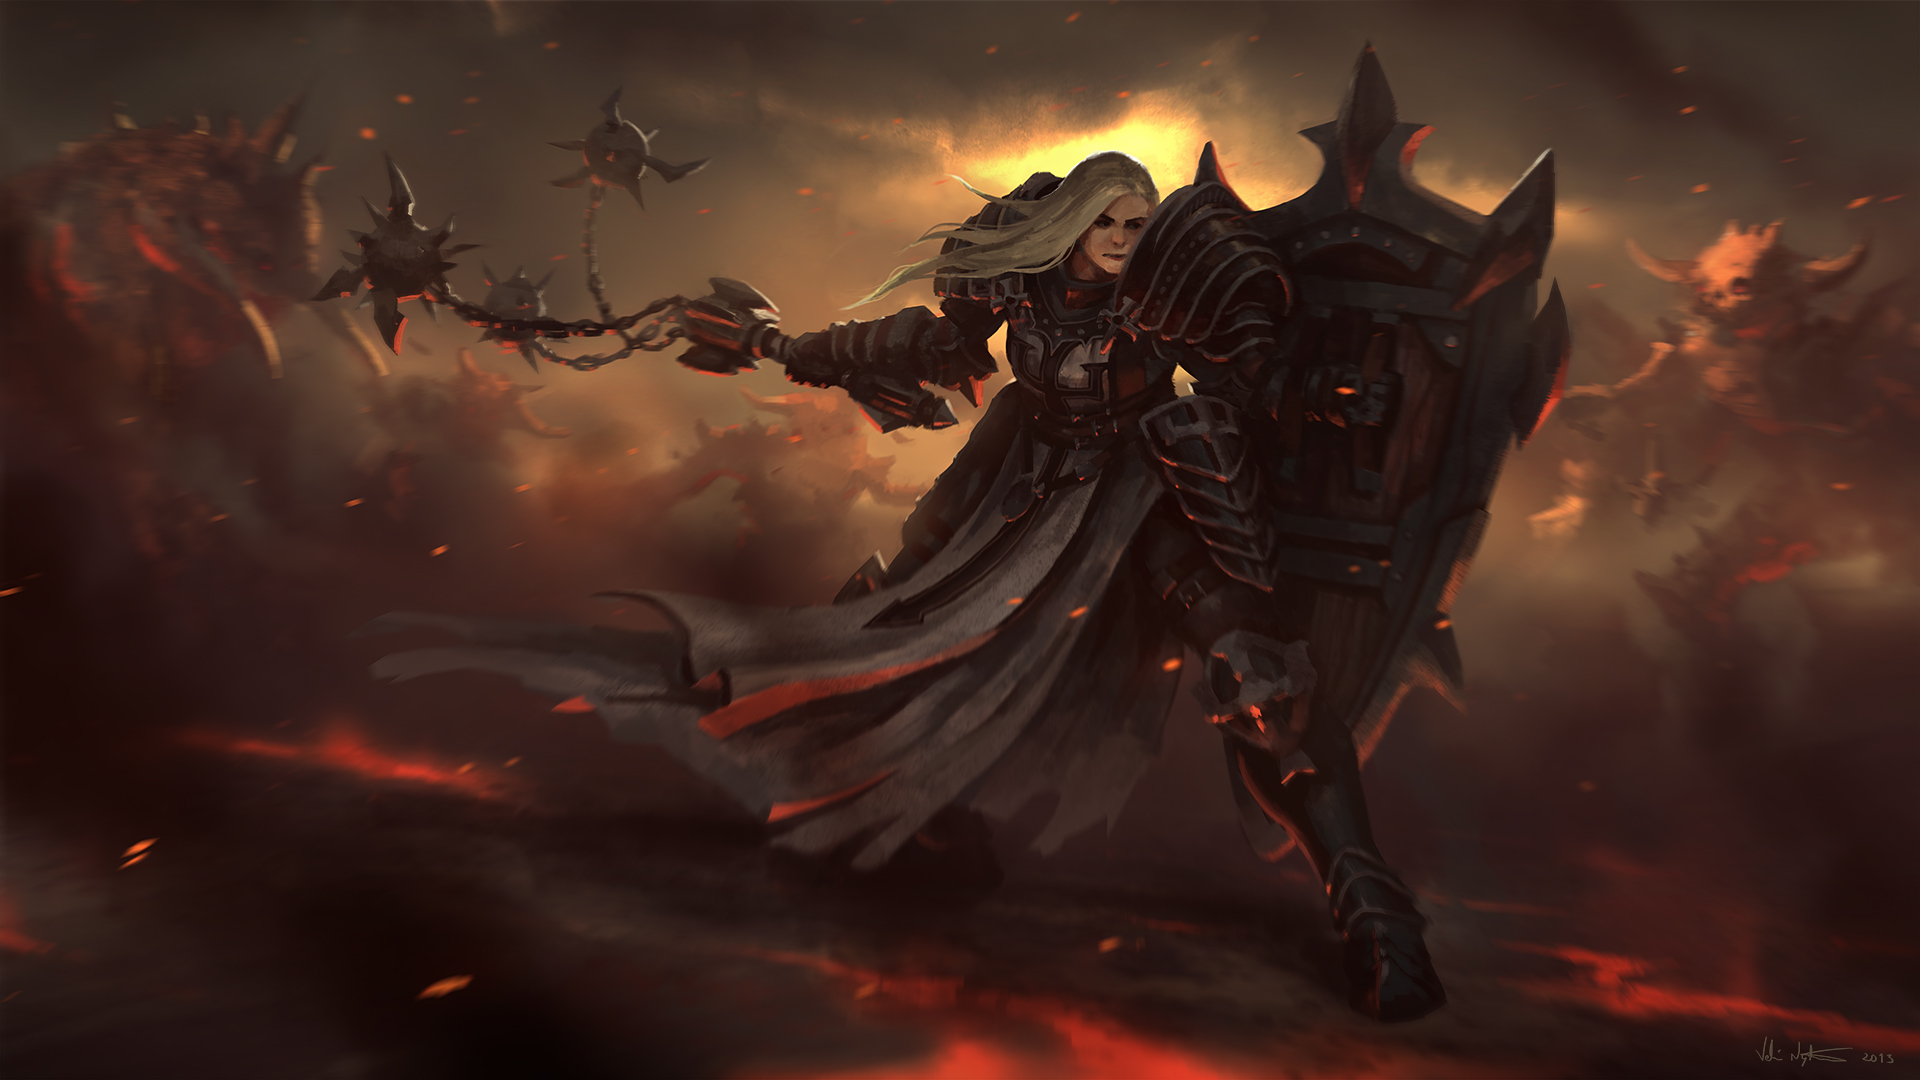 Diablo III: new game PS4 wallpapers and images - wallpapers ...